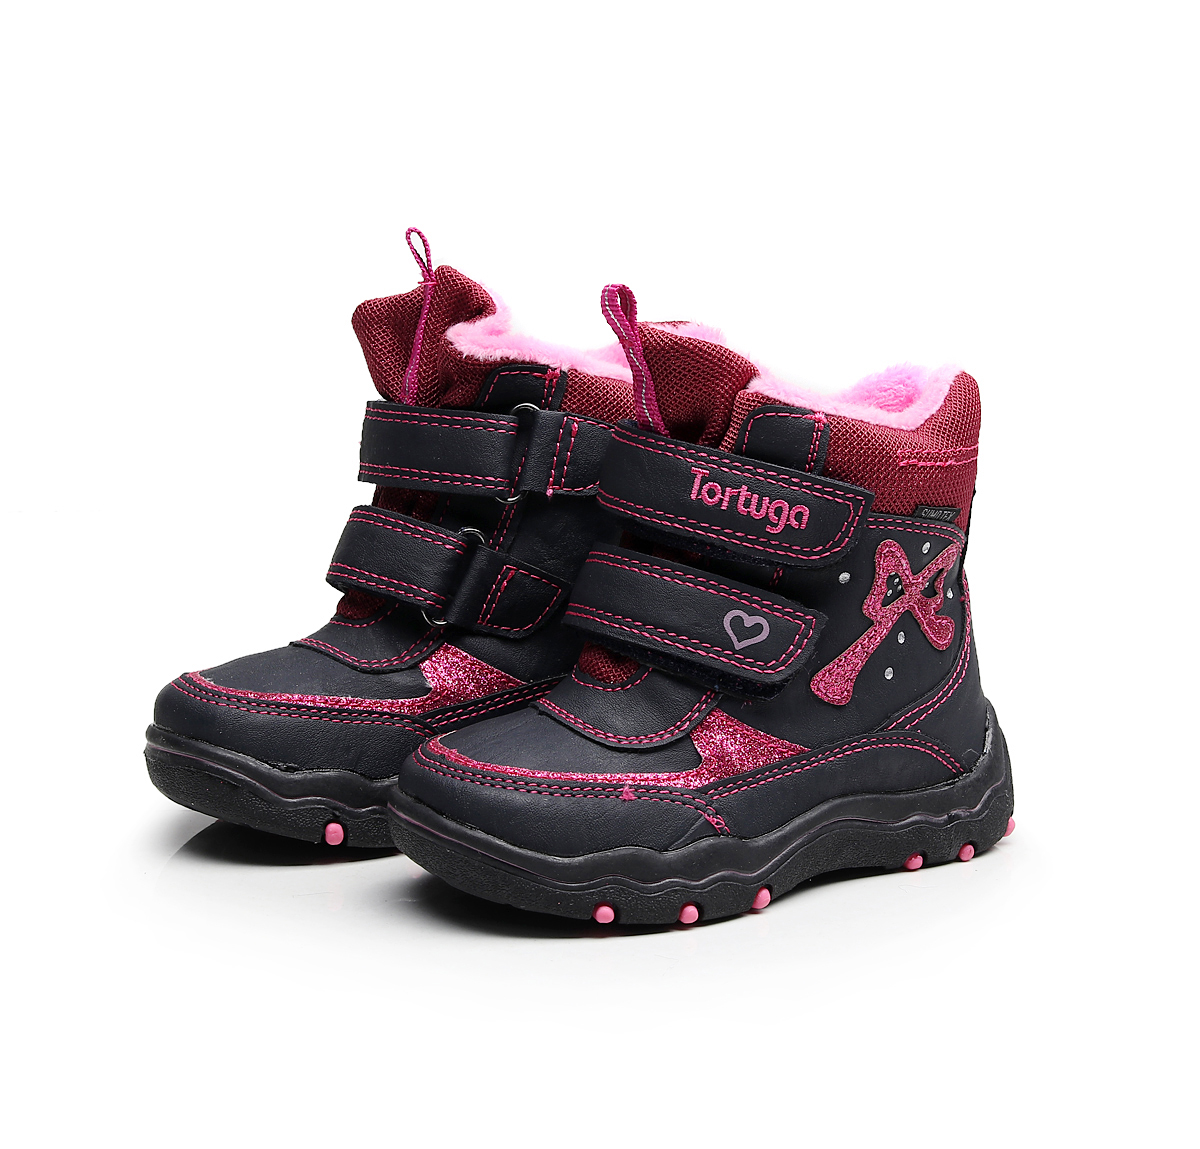 Girls winter hiking shoes kids waterproof slip-resistant snow shoes plush-padded walking shoes baby girls cotton shoes for-25C